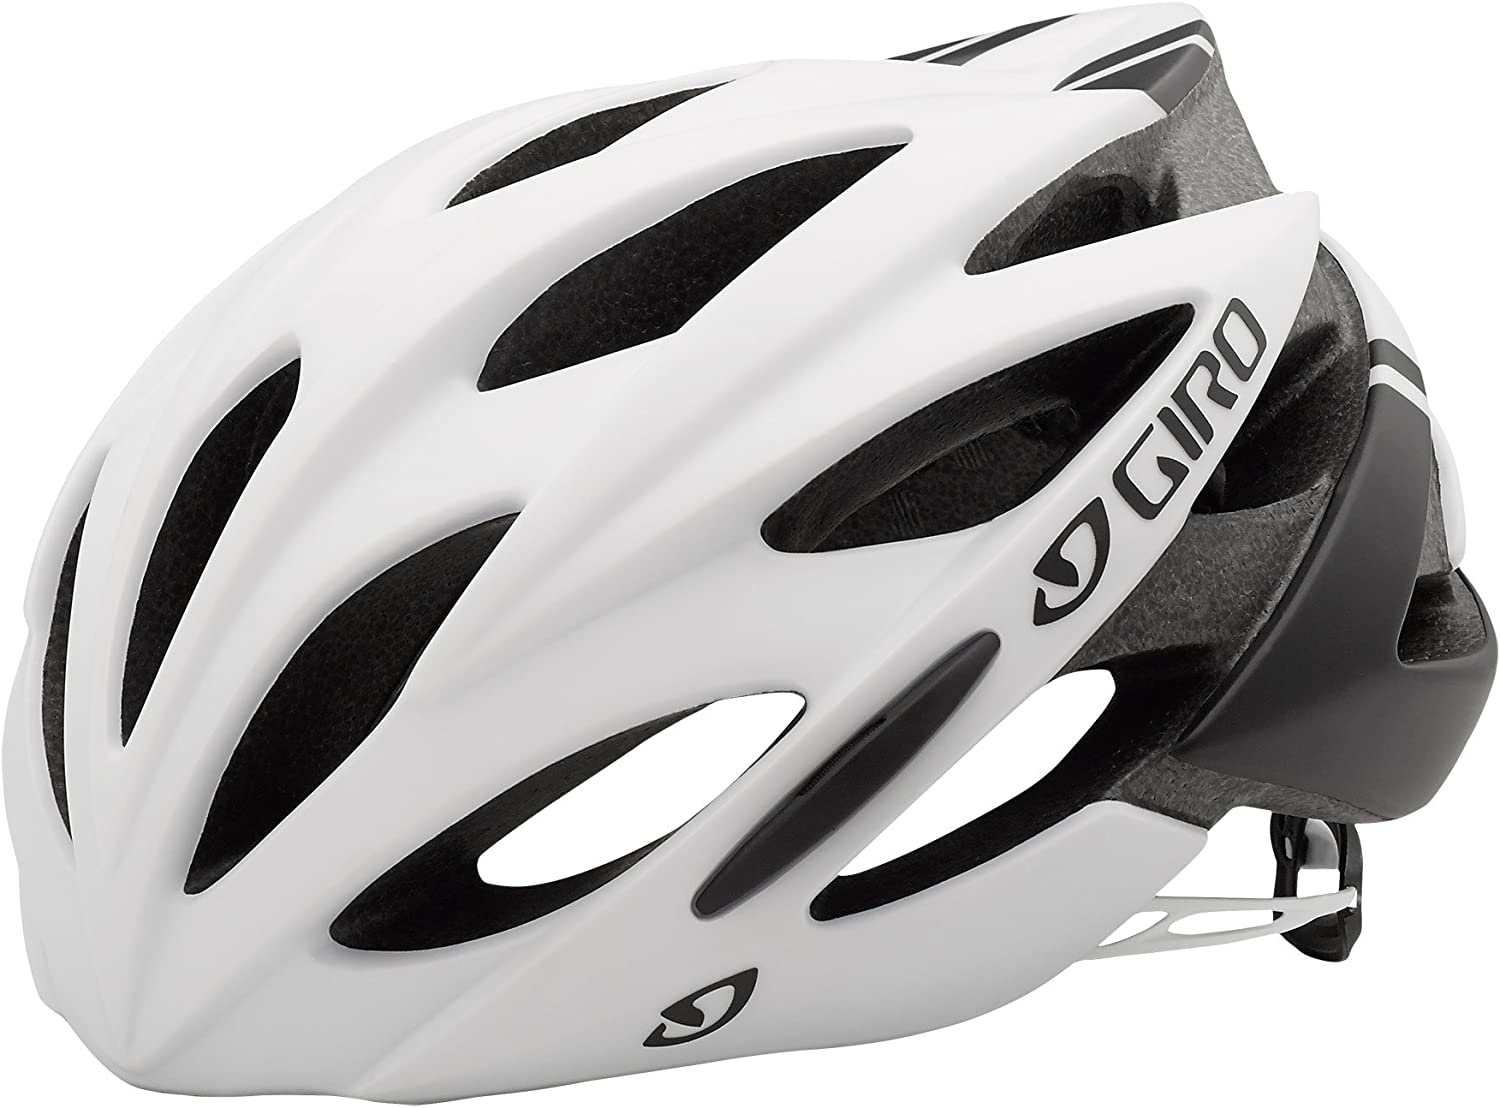 Giro Savant MIPS Helmet White Black, Small 51-55 cm